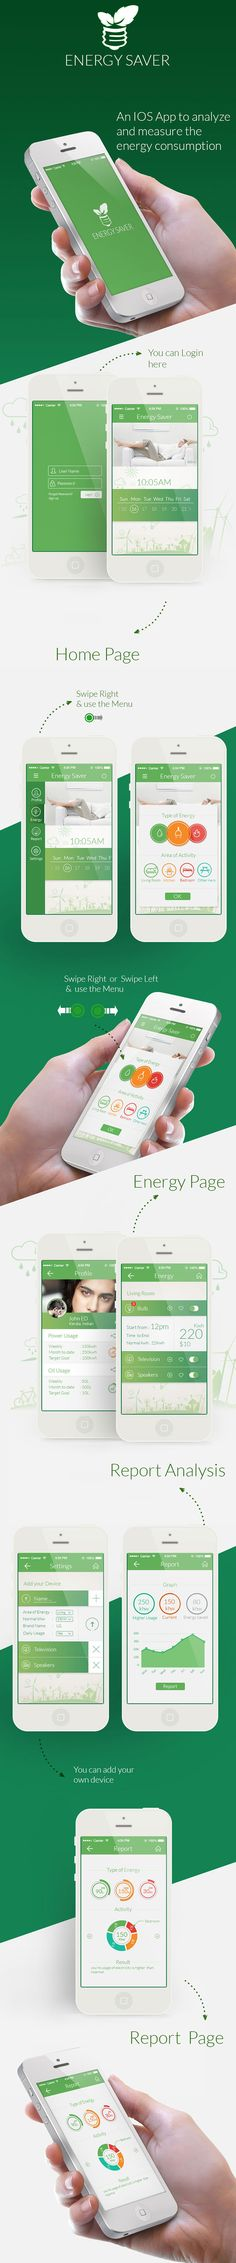 Daily Mobile UI Design Inspiration #323